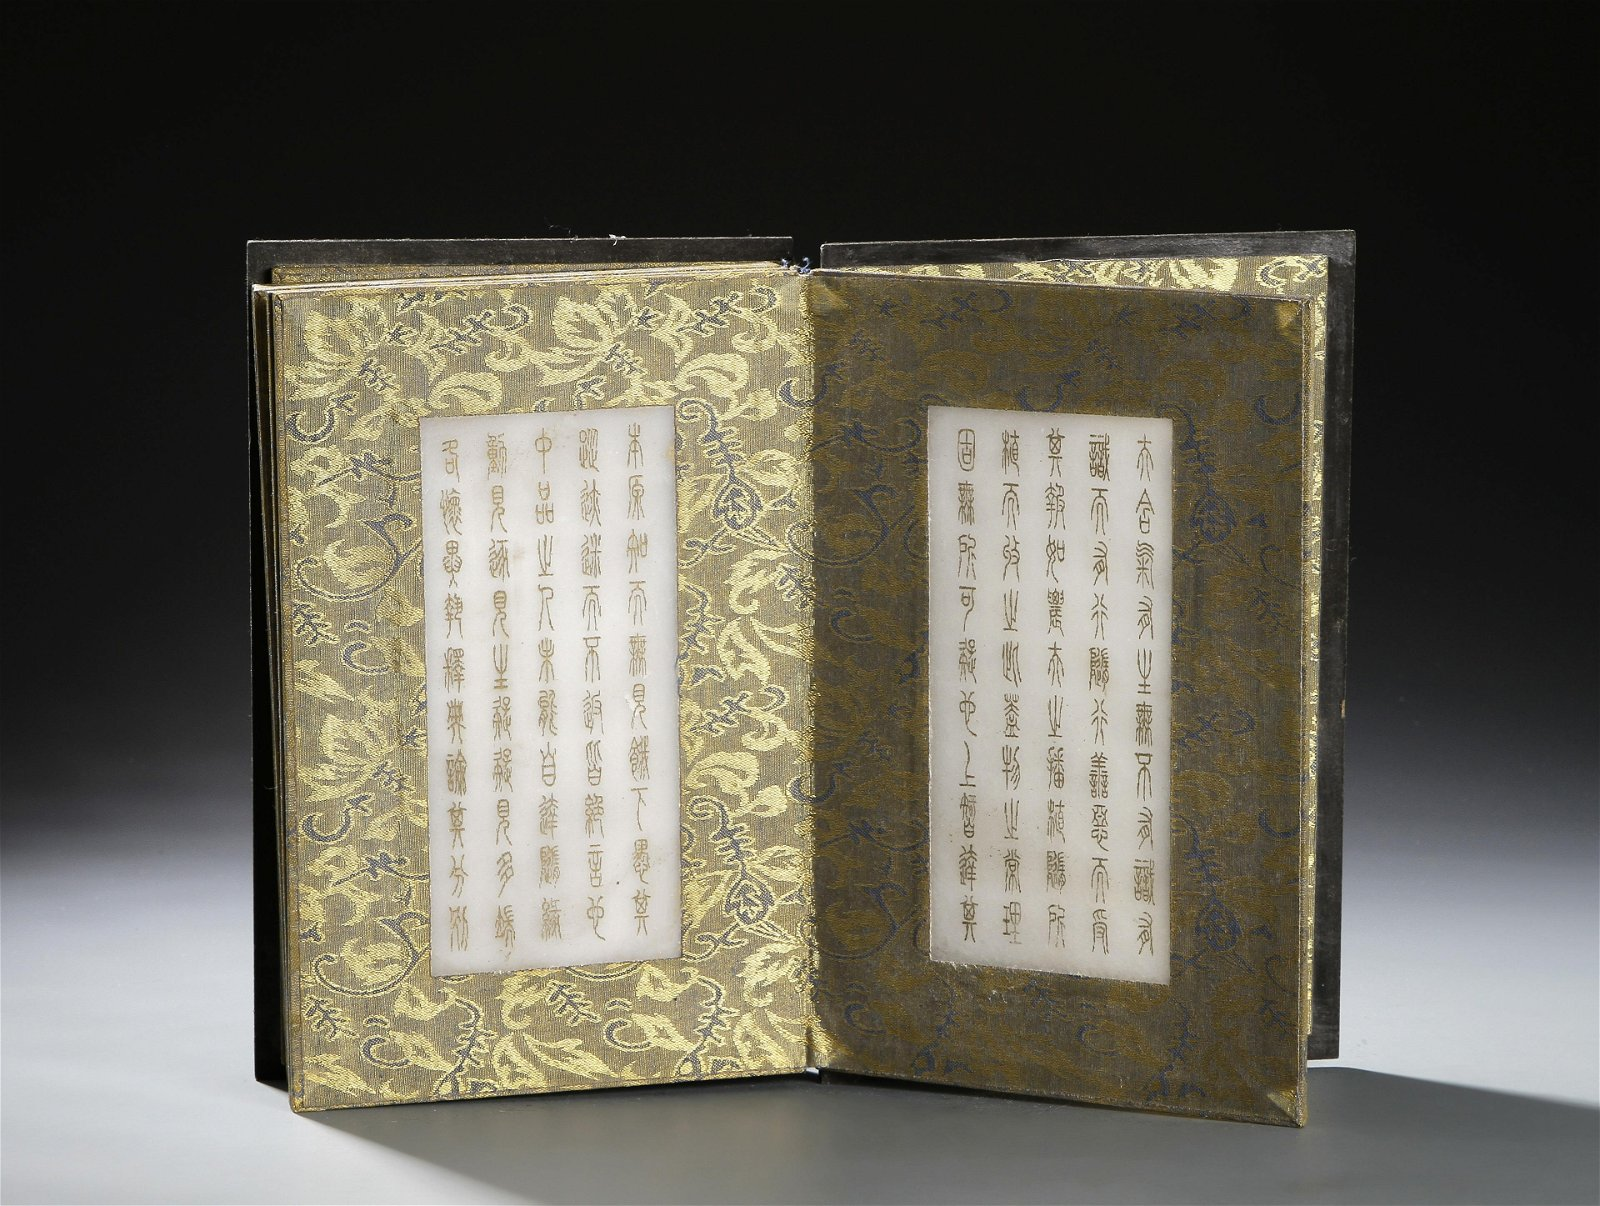 Rare Chinese Gilt-Decorated Jade Book